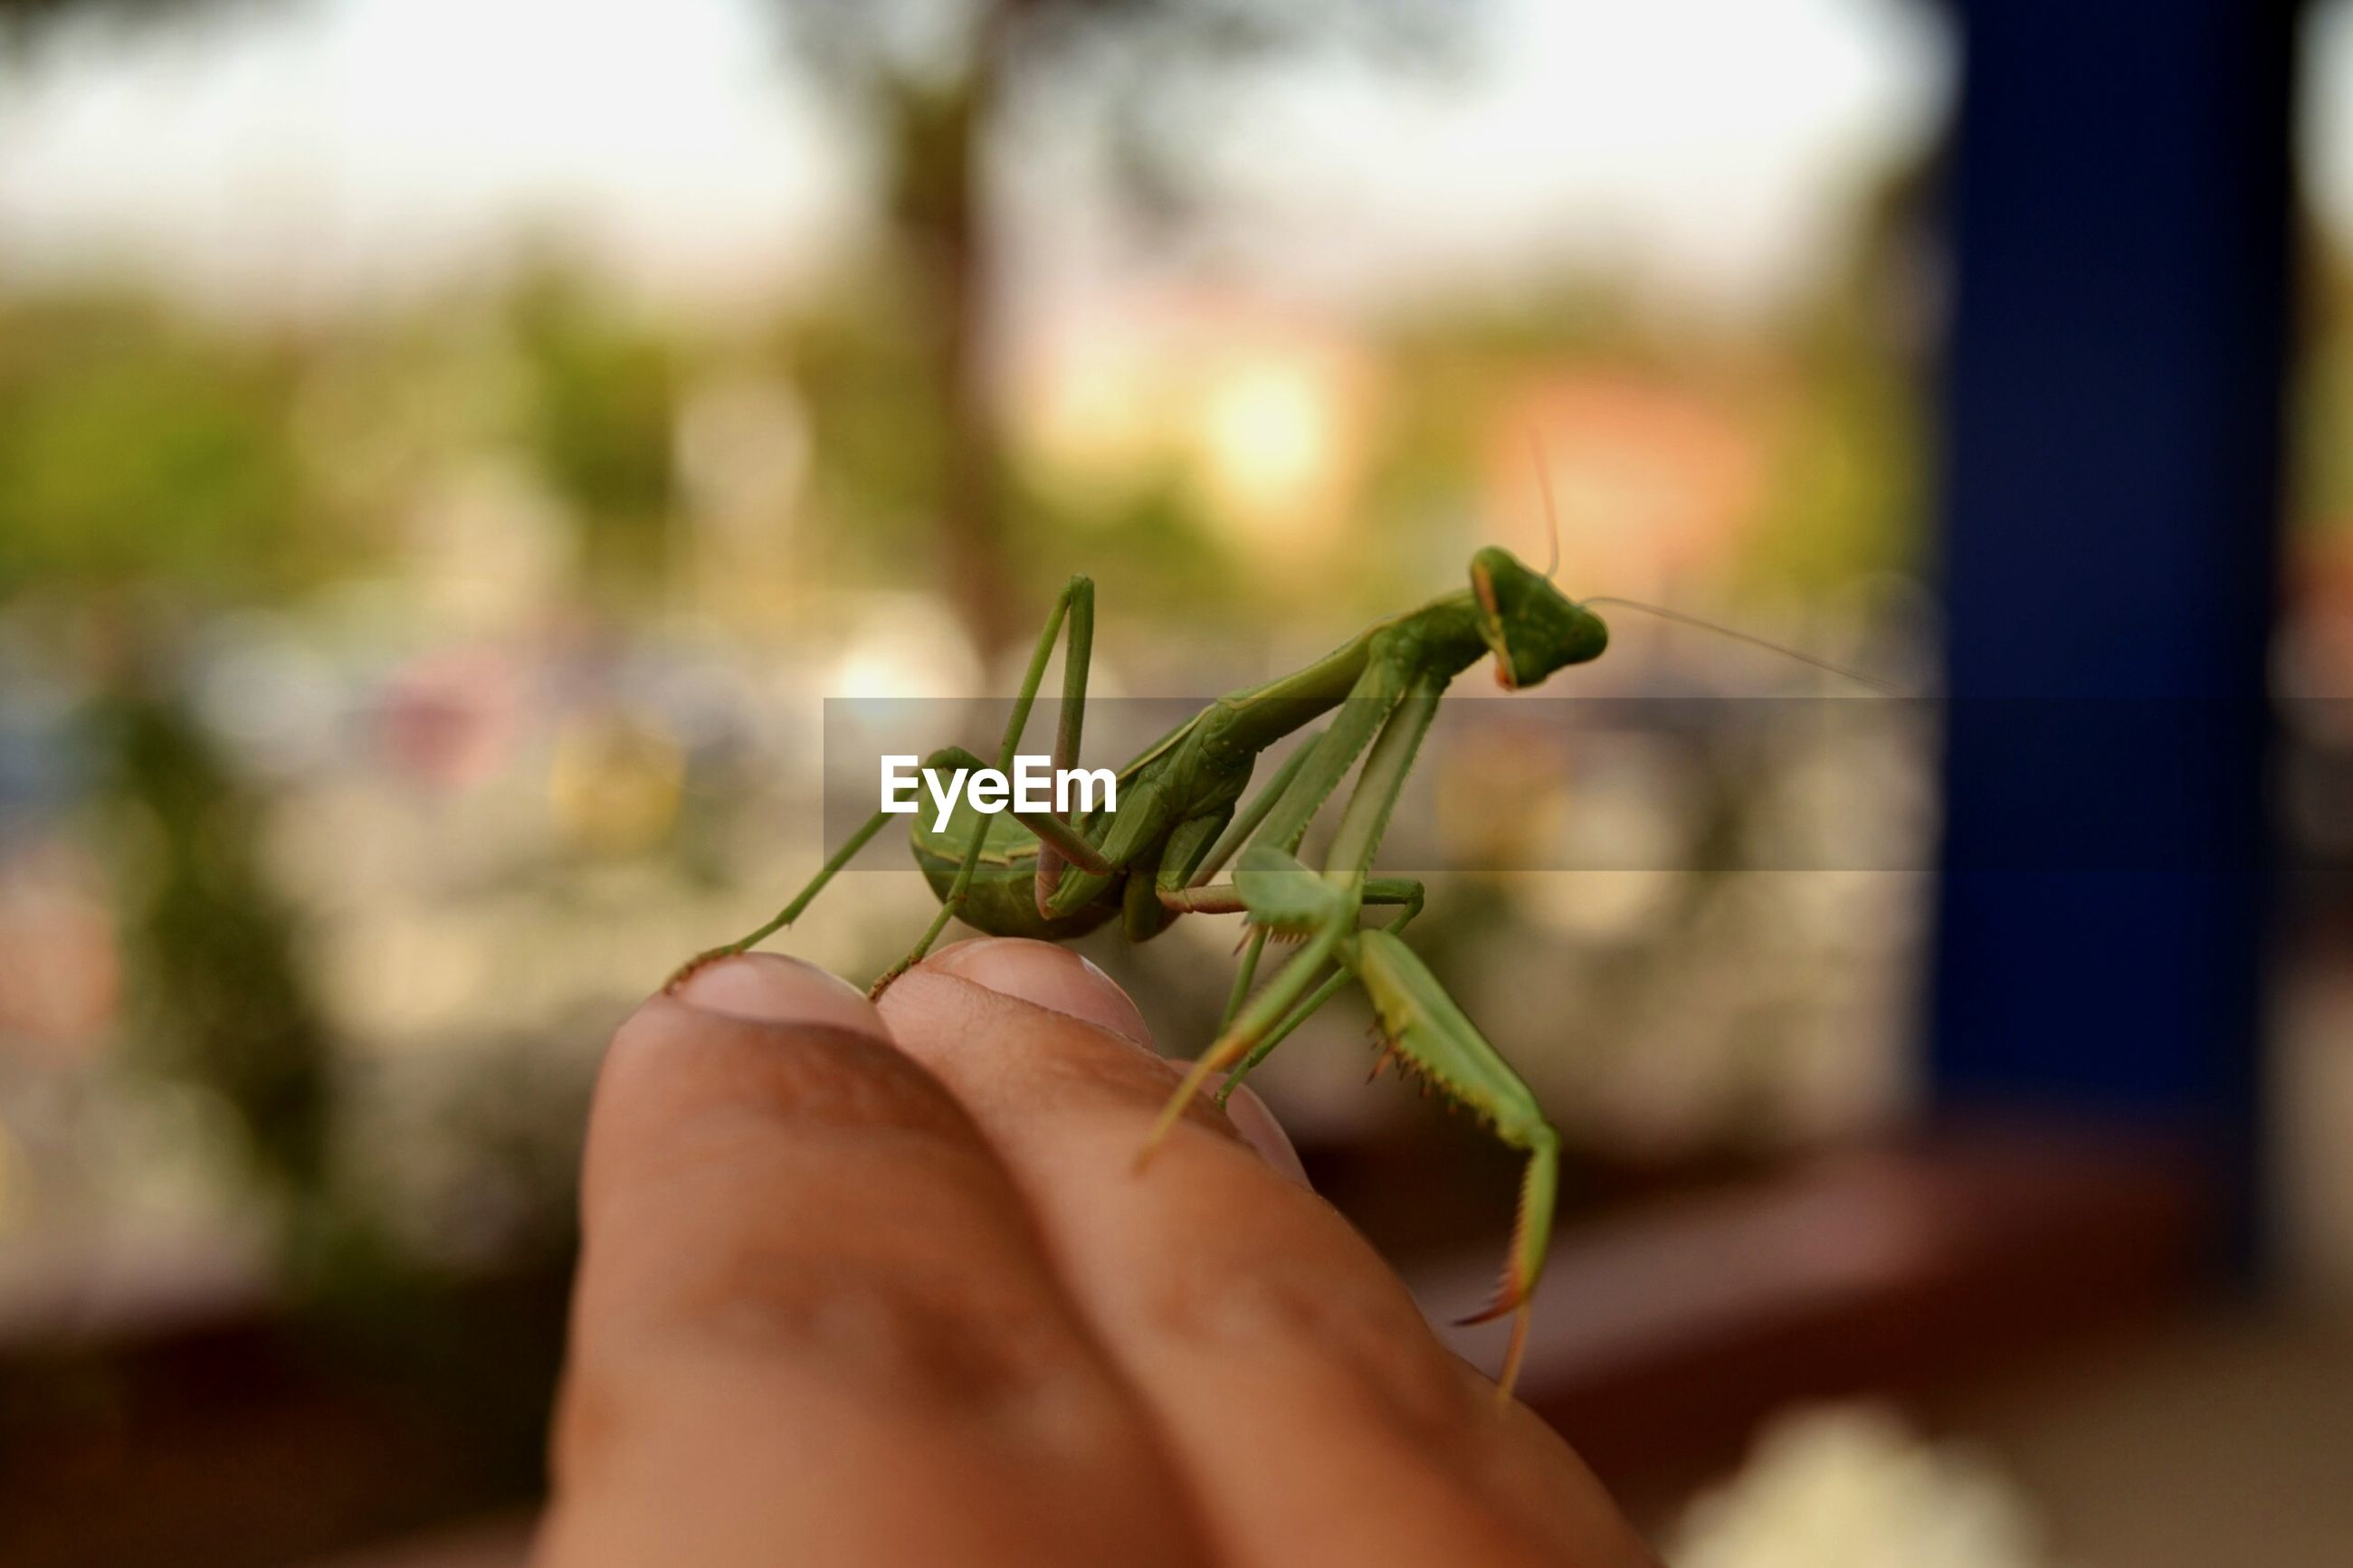 one animal, animal themes, animals in the wild, insect, wildlife, focus on foreground, close-up, green color, grasshopper, person, leaf, selective focus, animal antenna, one person, full length, zoology, nature, lizard, side view, outdoors